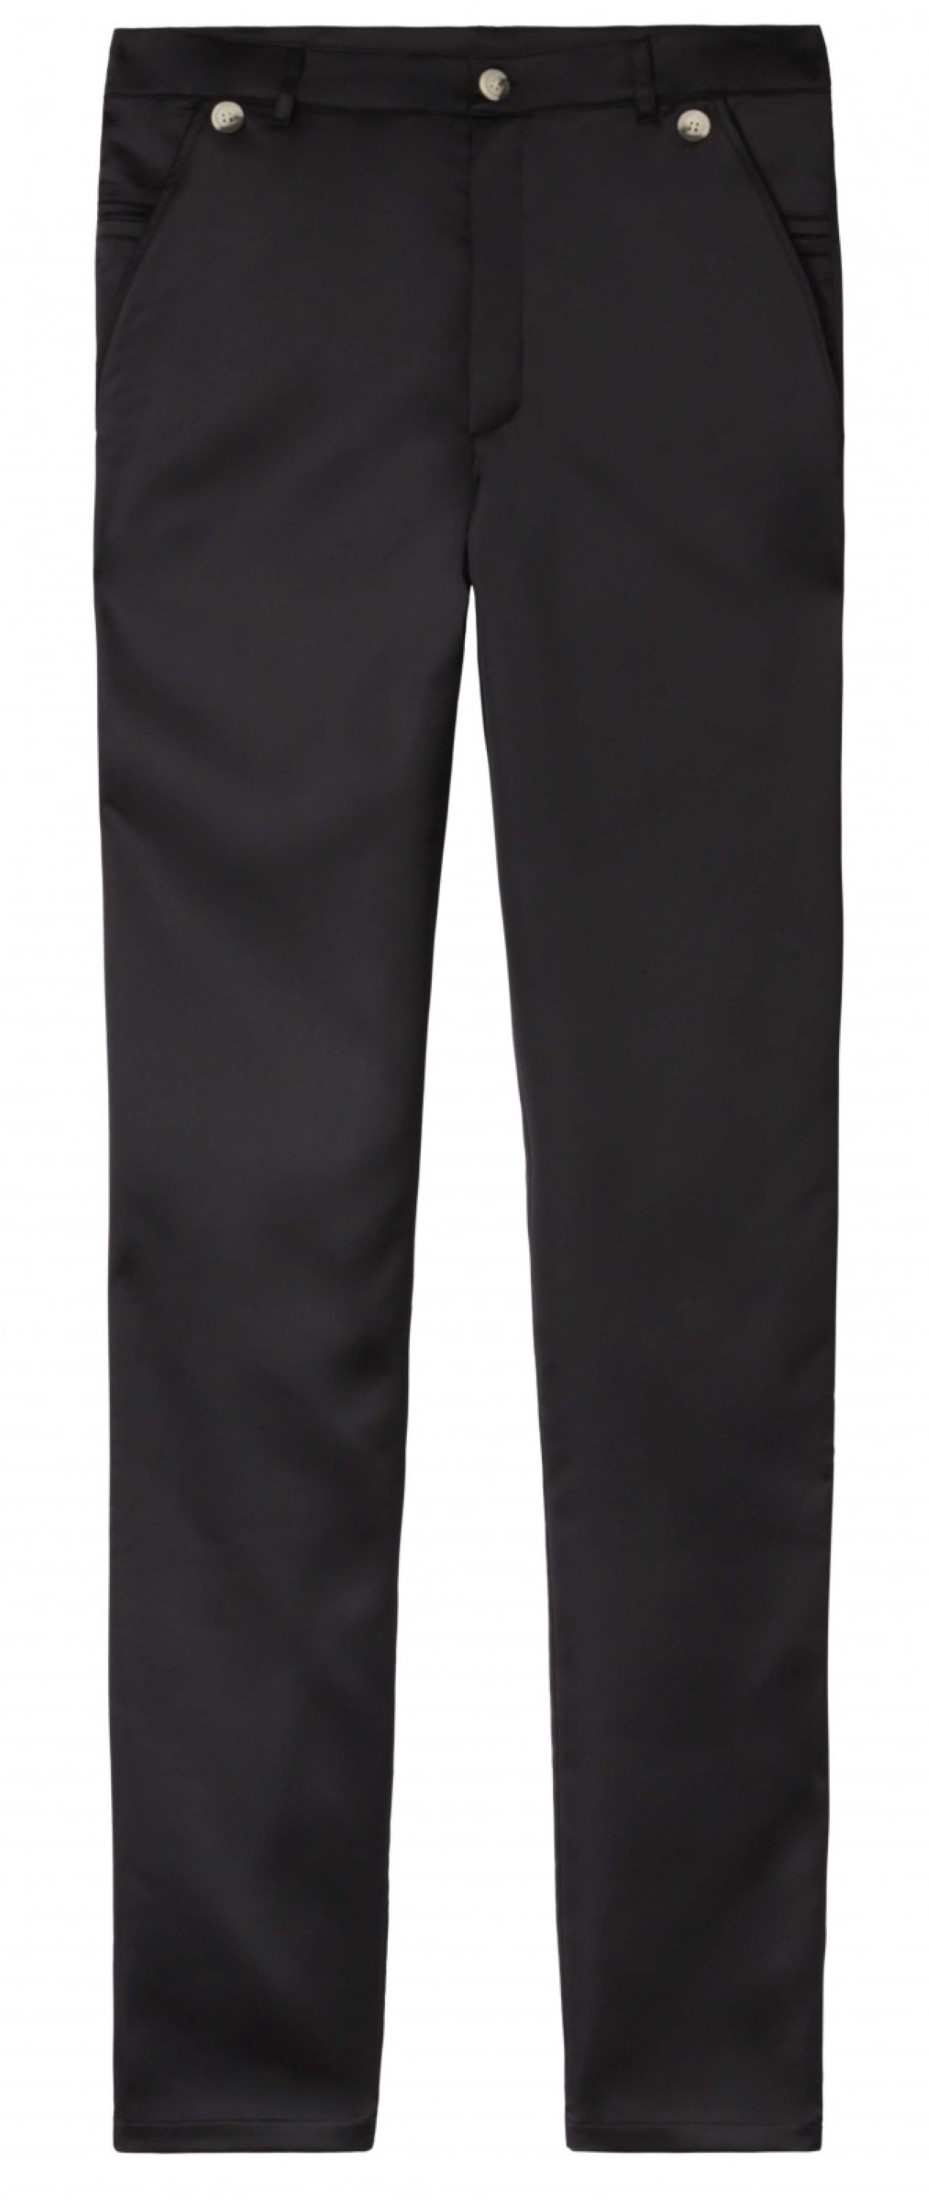 10Days zwarte glanzende high waist pantalon